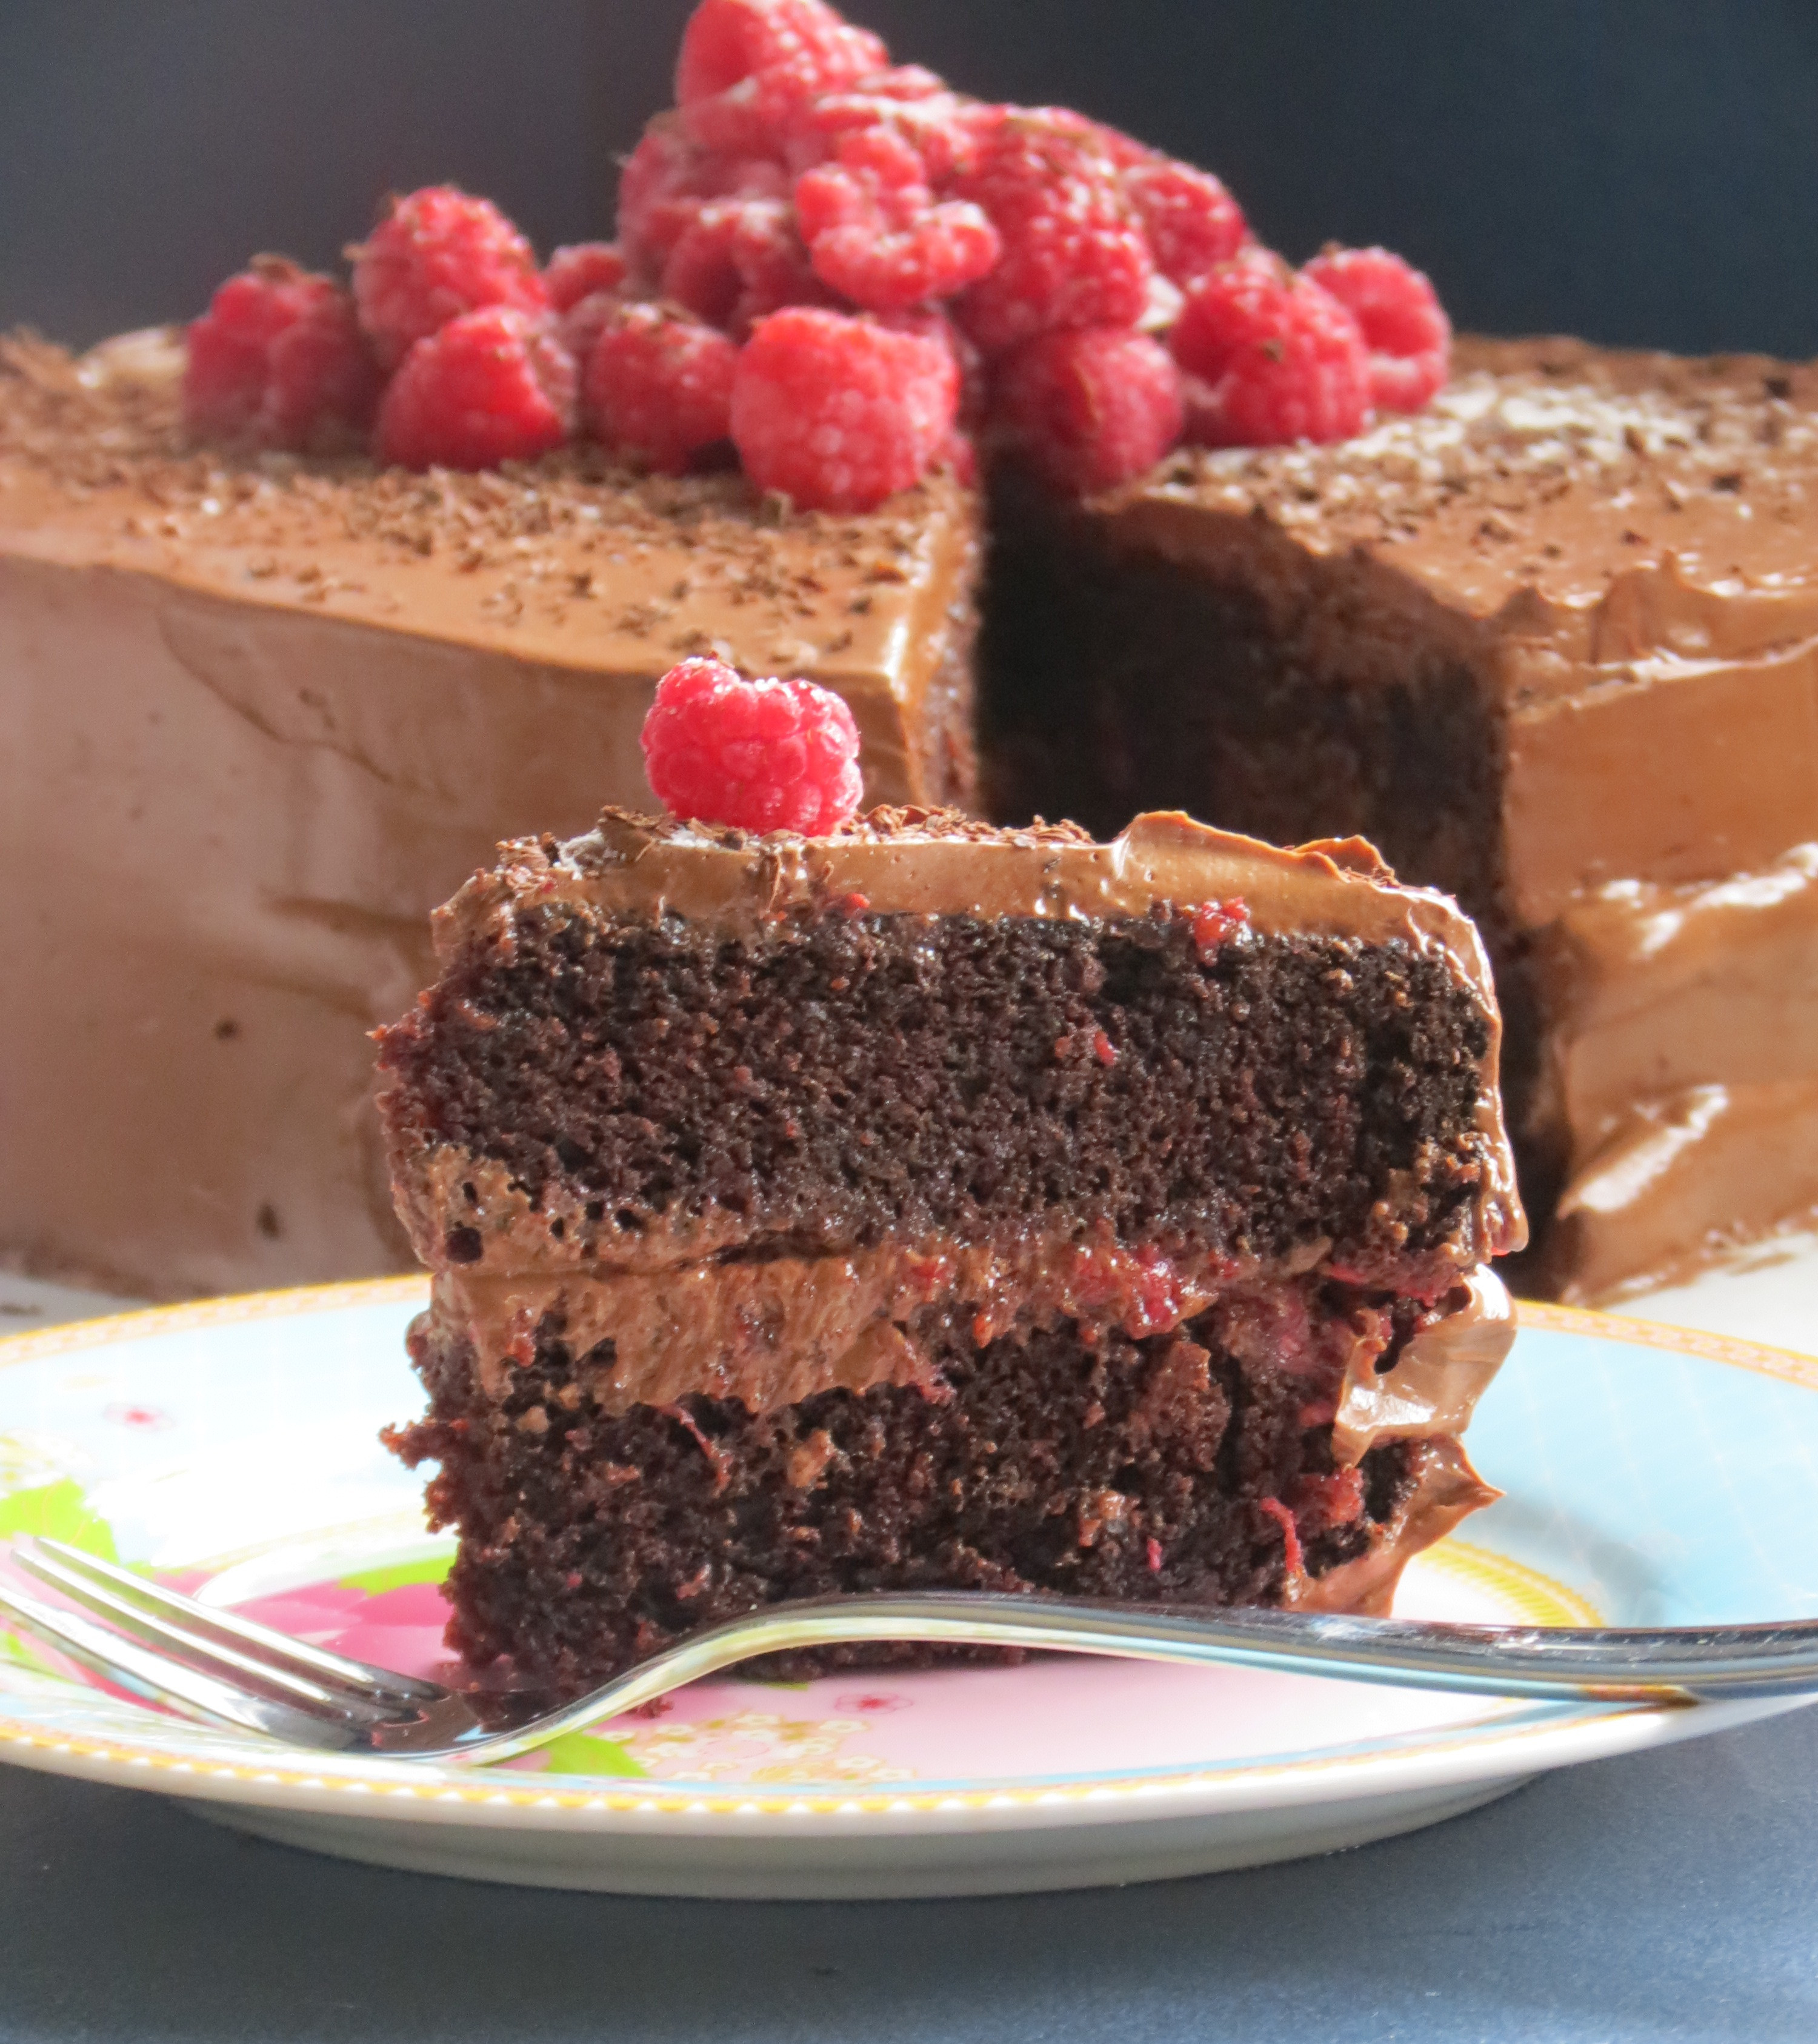 Vegan Chocolate Cake  Vegan chocolate cake egg free and dairy free raspberry